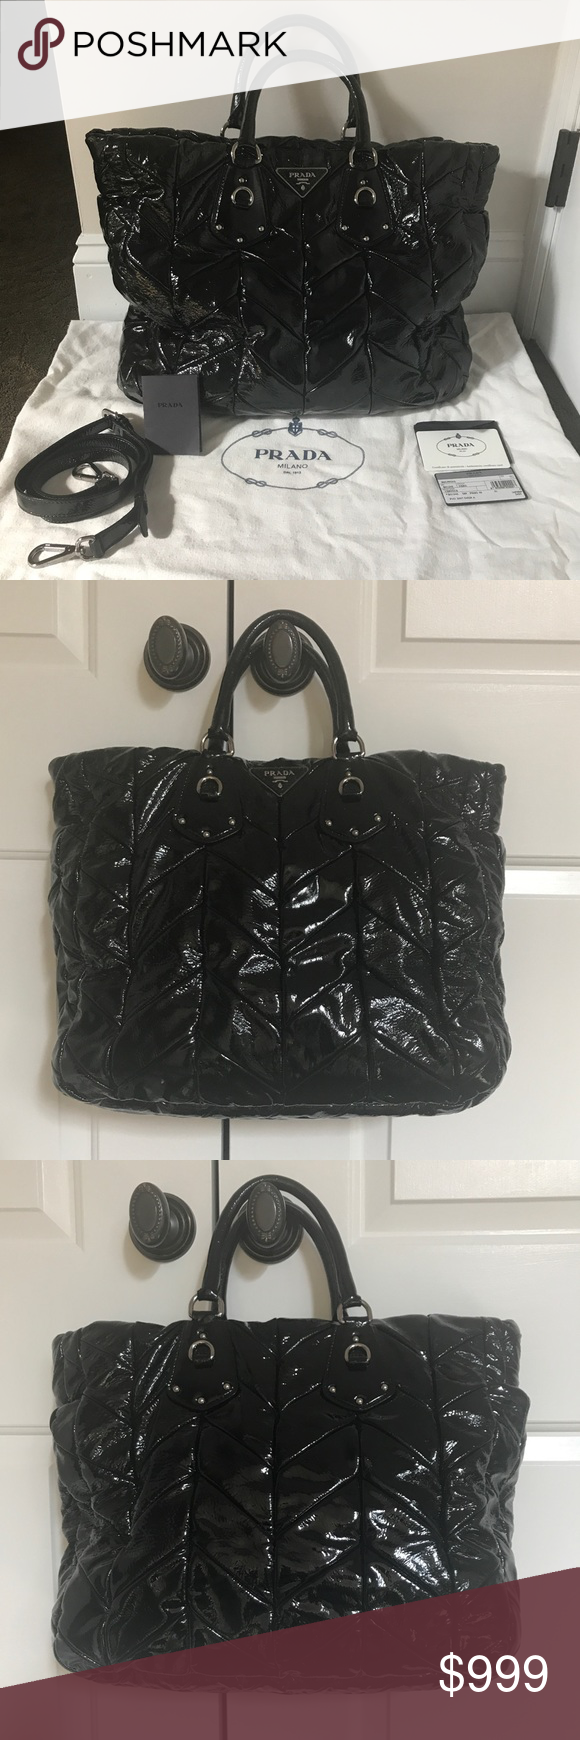 2f2d20e1d0 PRADA - style BN1542 Vernice Tote Very Good Condition- Quilted Chevron  pattern in Black Patent